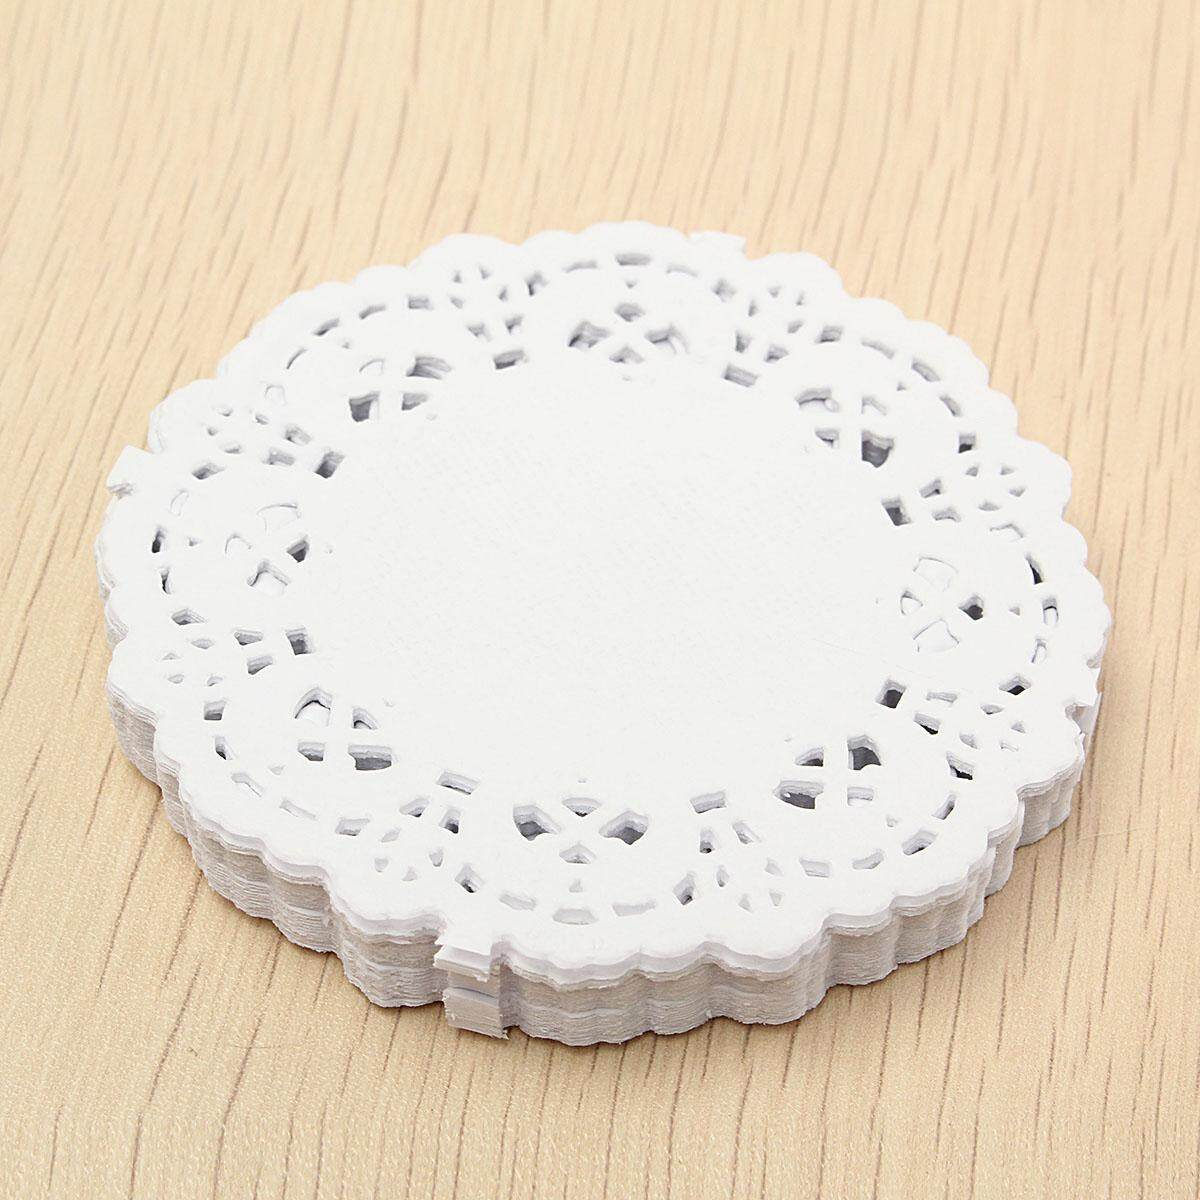 100pcs White Food Grade Doylies Paper Wedding Party Decoration Multi Size Cake Lace